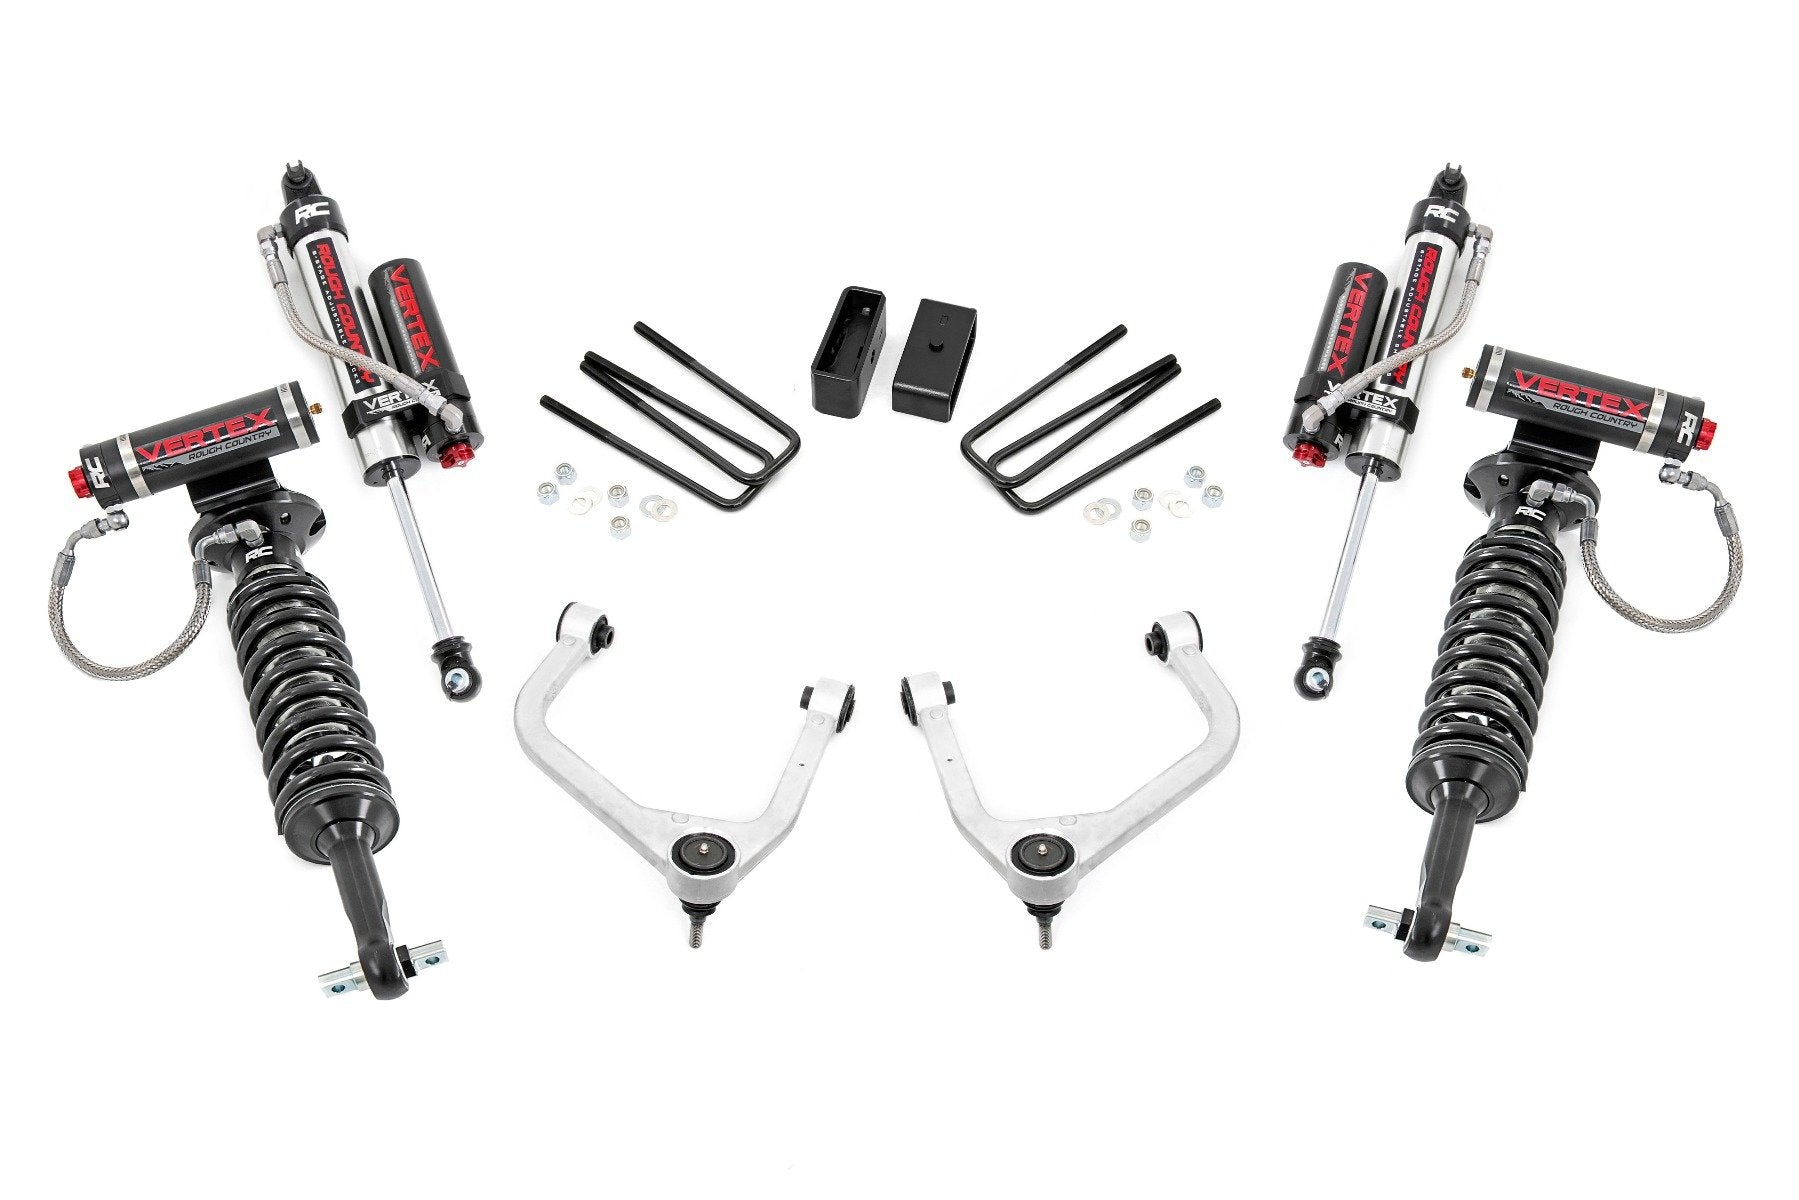 3.5in Vertex Suspension Lift Kit w/ Forged Upper Control Arms (19-21 Chevy 1500 PU 4WD/2WD)